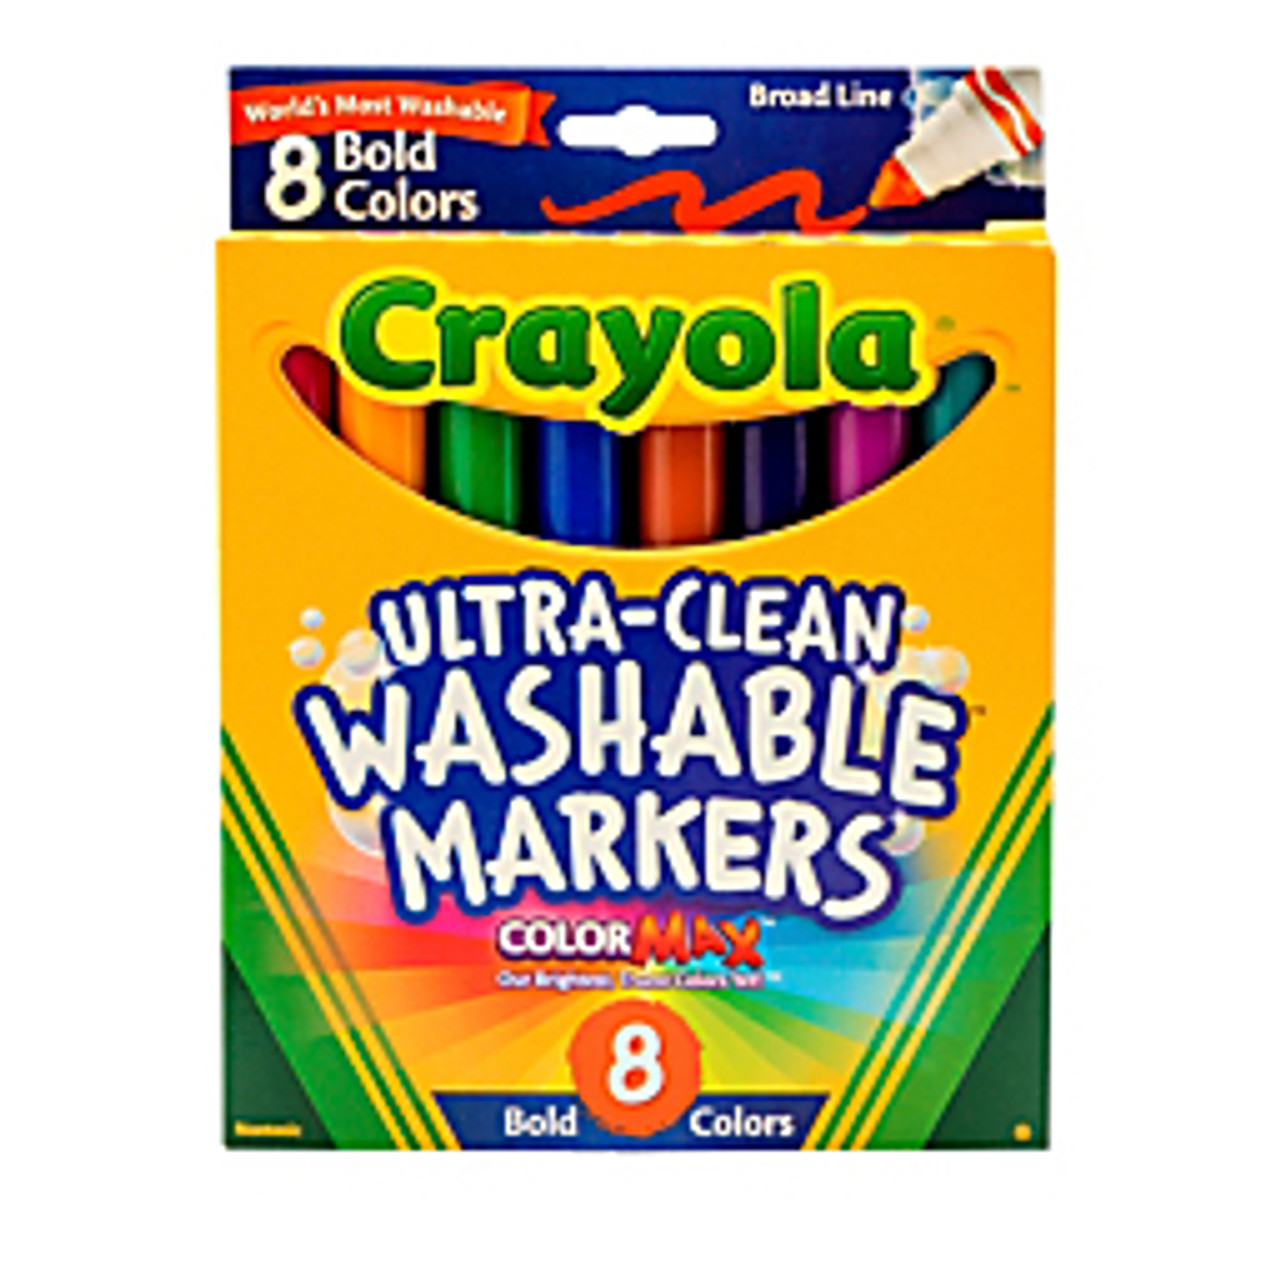 Assorted Bold Colors Crayola Washable Markers 58-7832 Broad Line Pack of 8